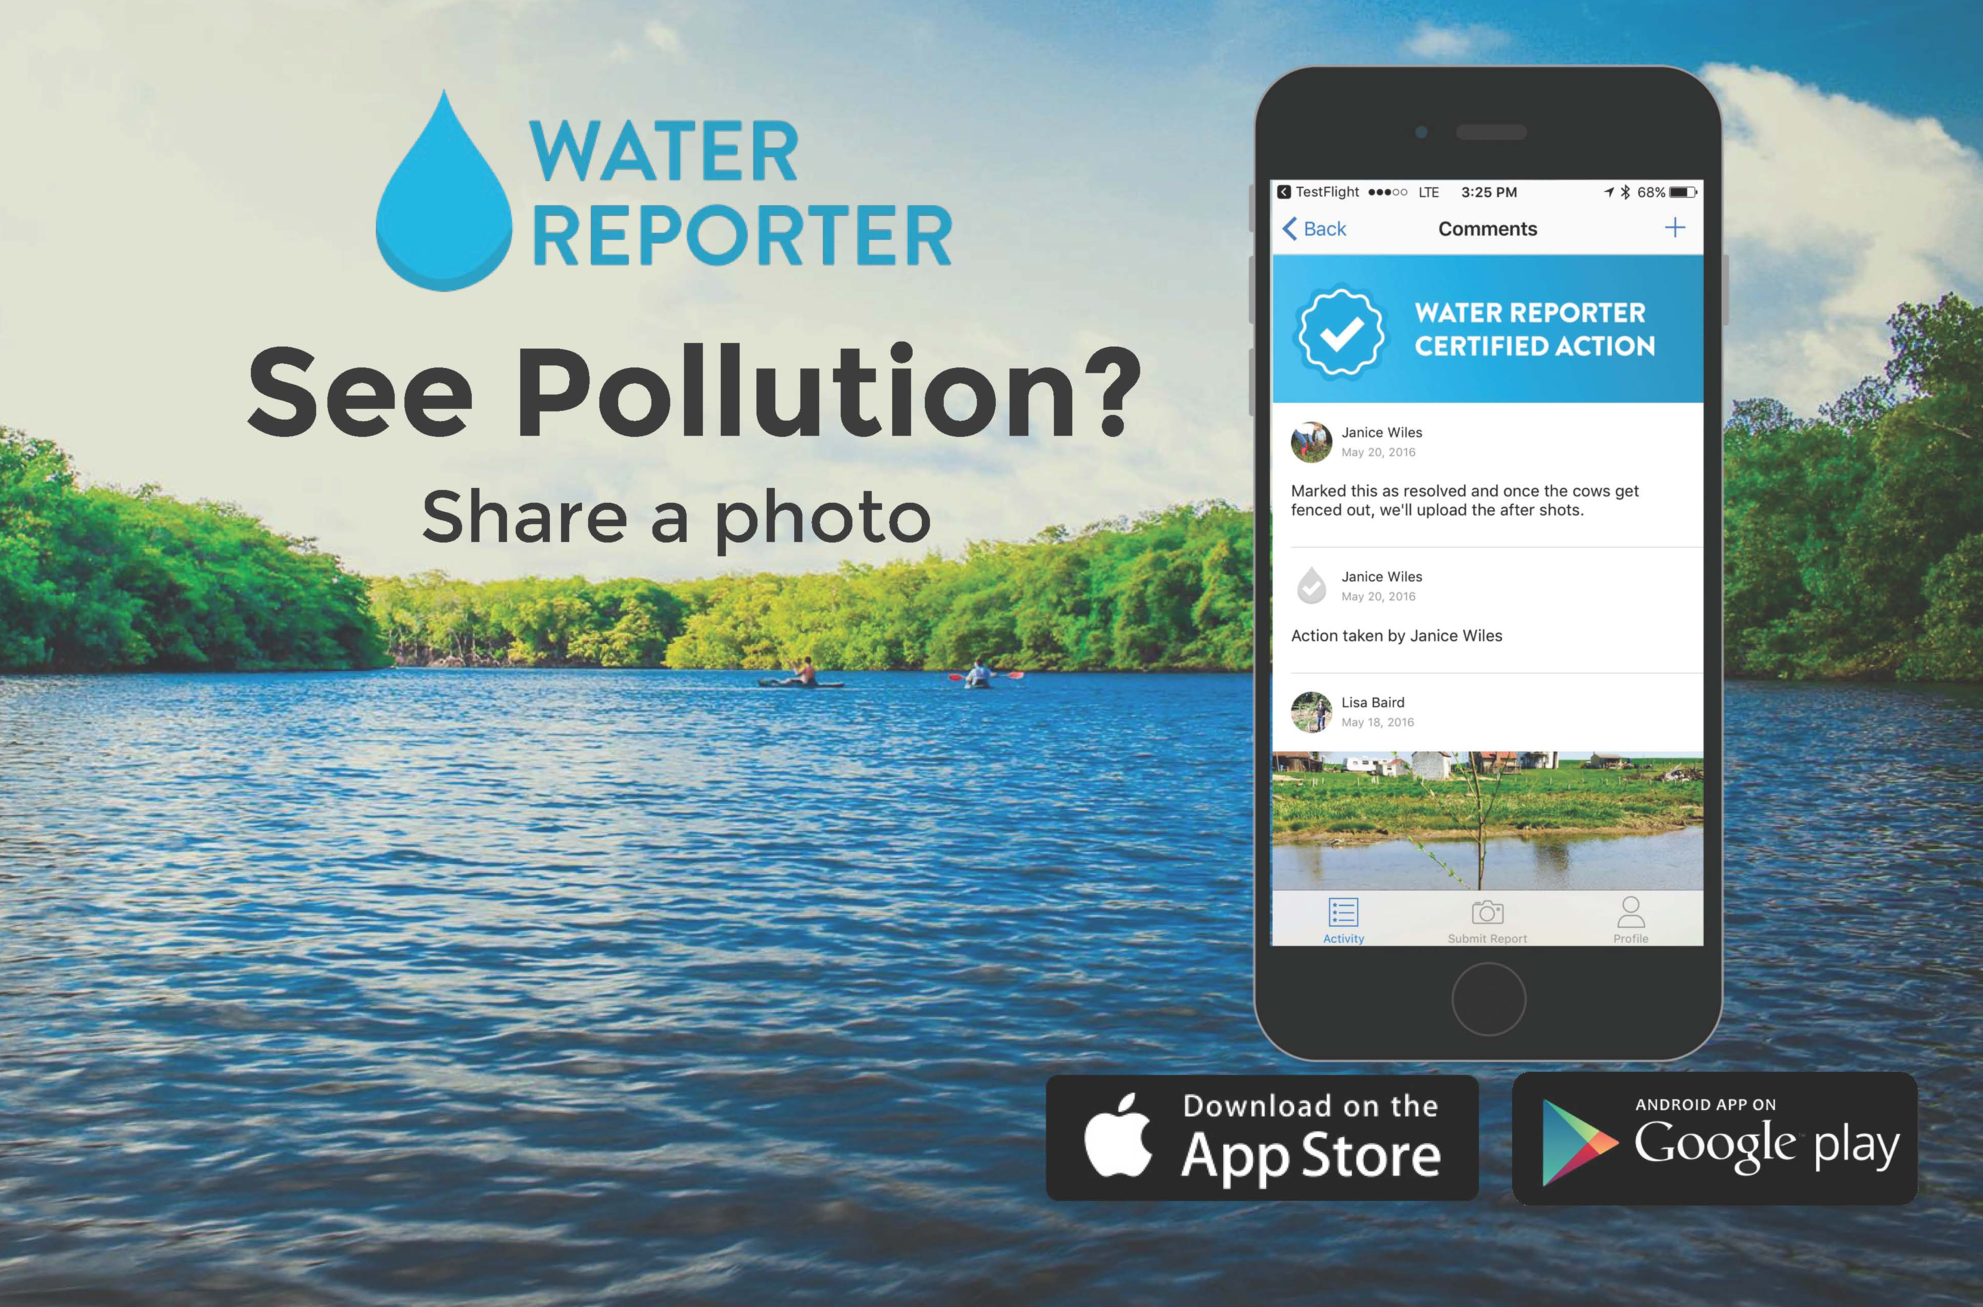 Water Reporter is a social network optimized to support watershed initiatives. Water Reporter members help to build a living record of experiences and conditions on the world's waterways. Their actions create connections among citizens and organizations working toward the common goal of improving water quality.